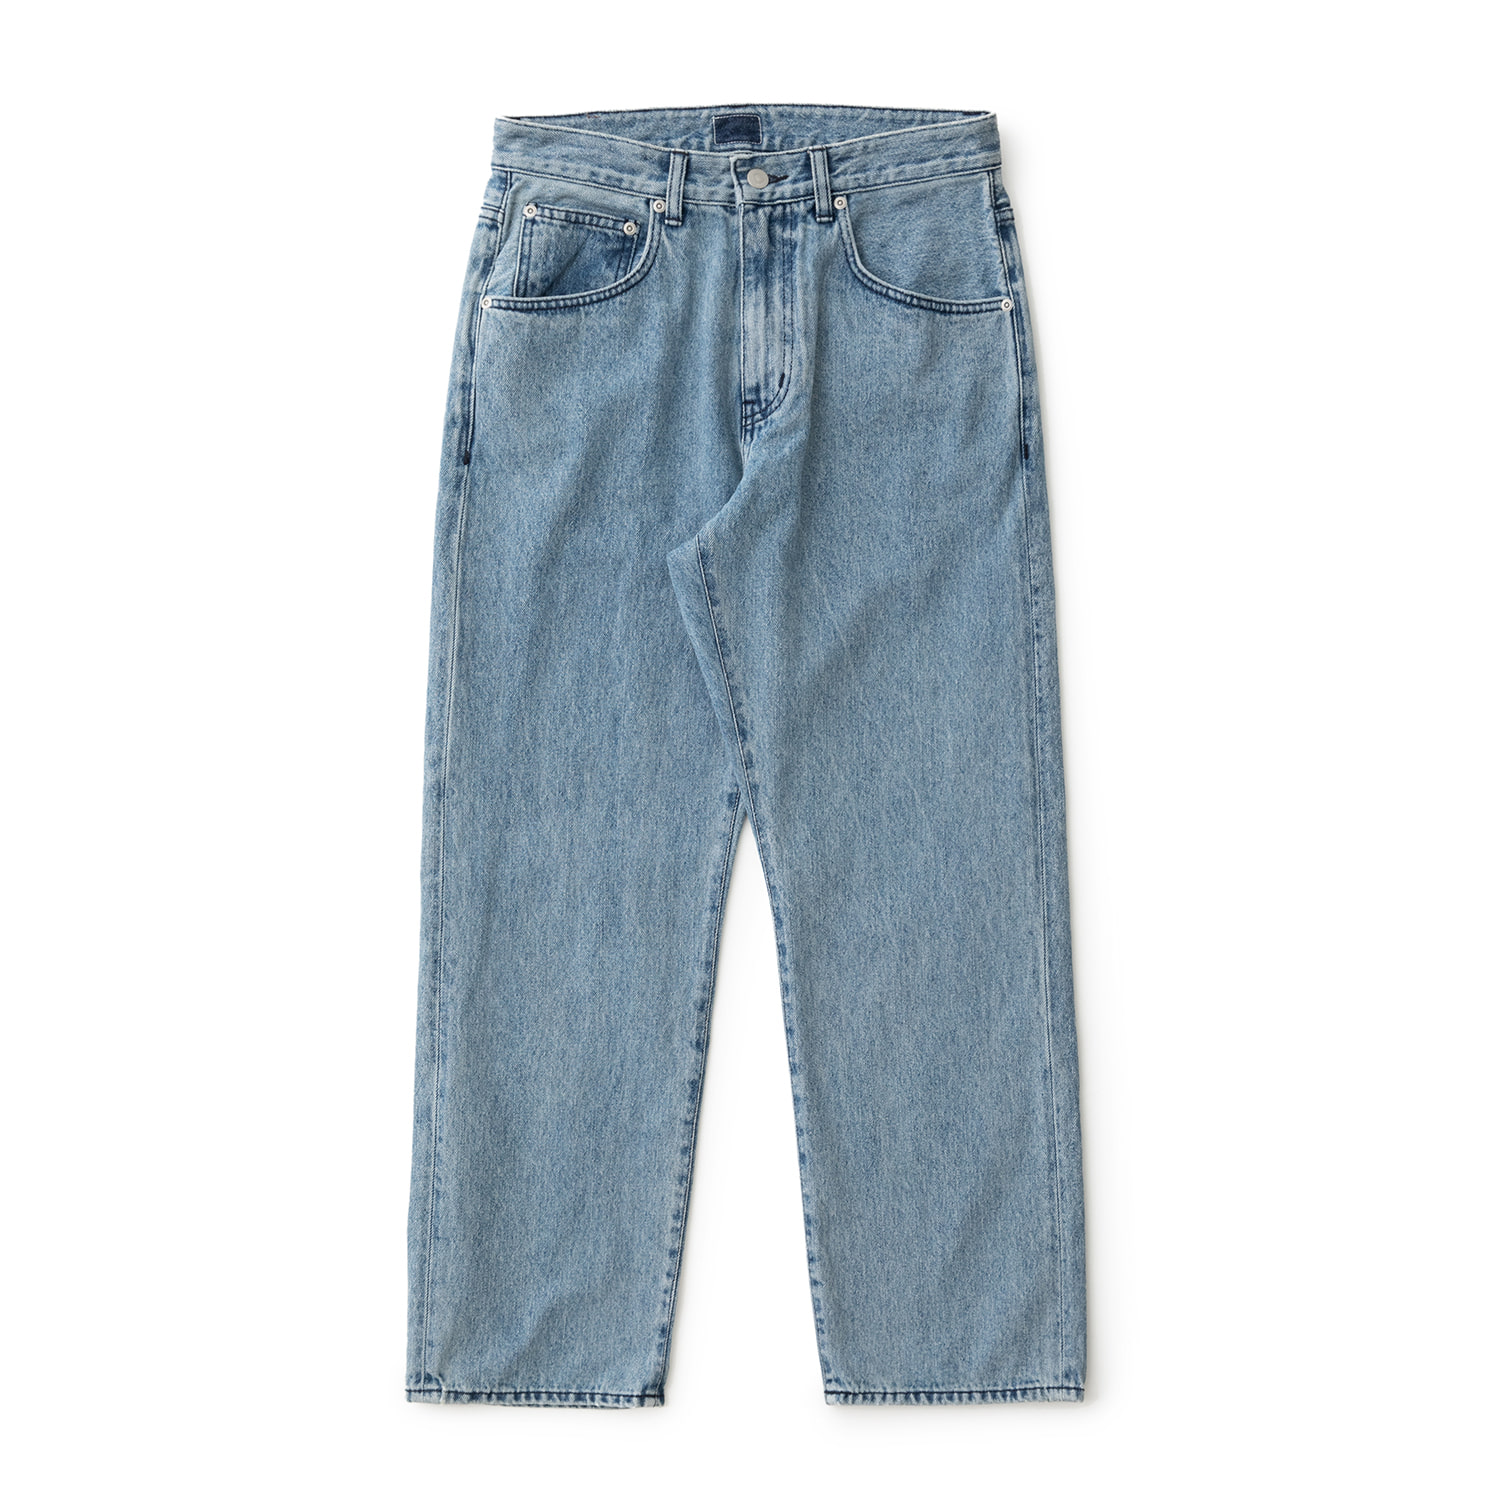 21SS River Jeans Type 3 (Icewash)